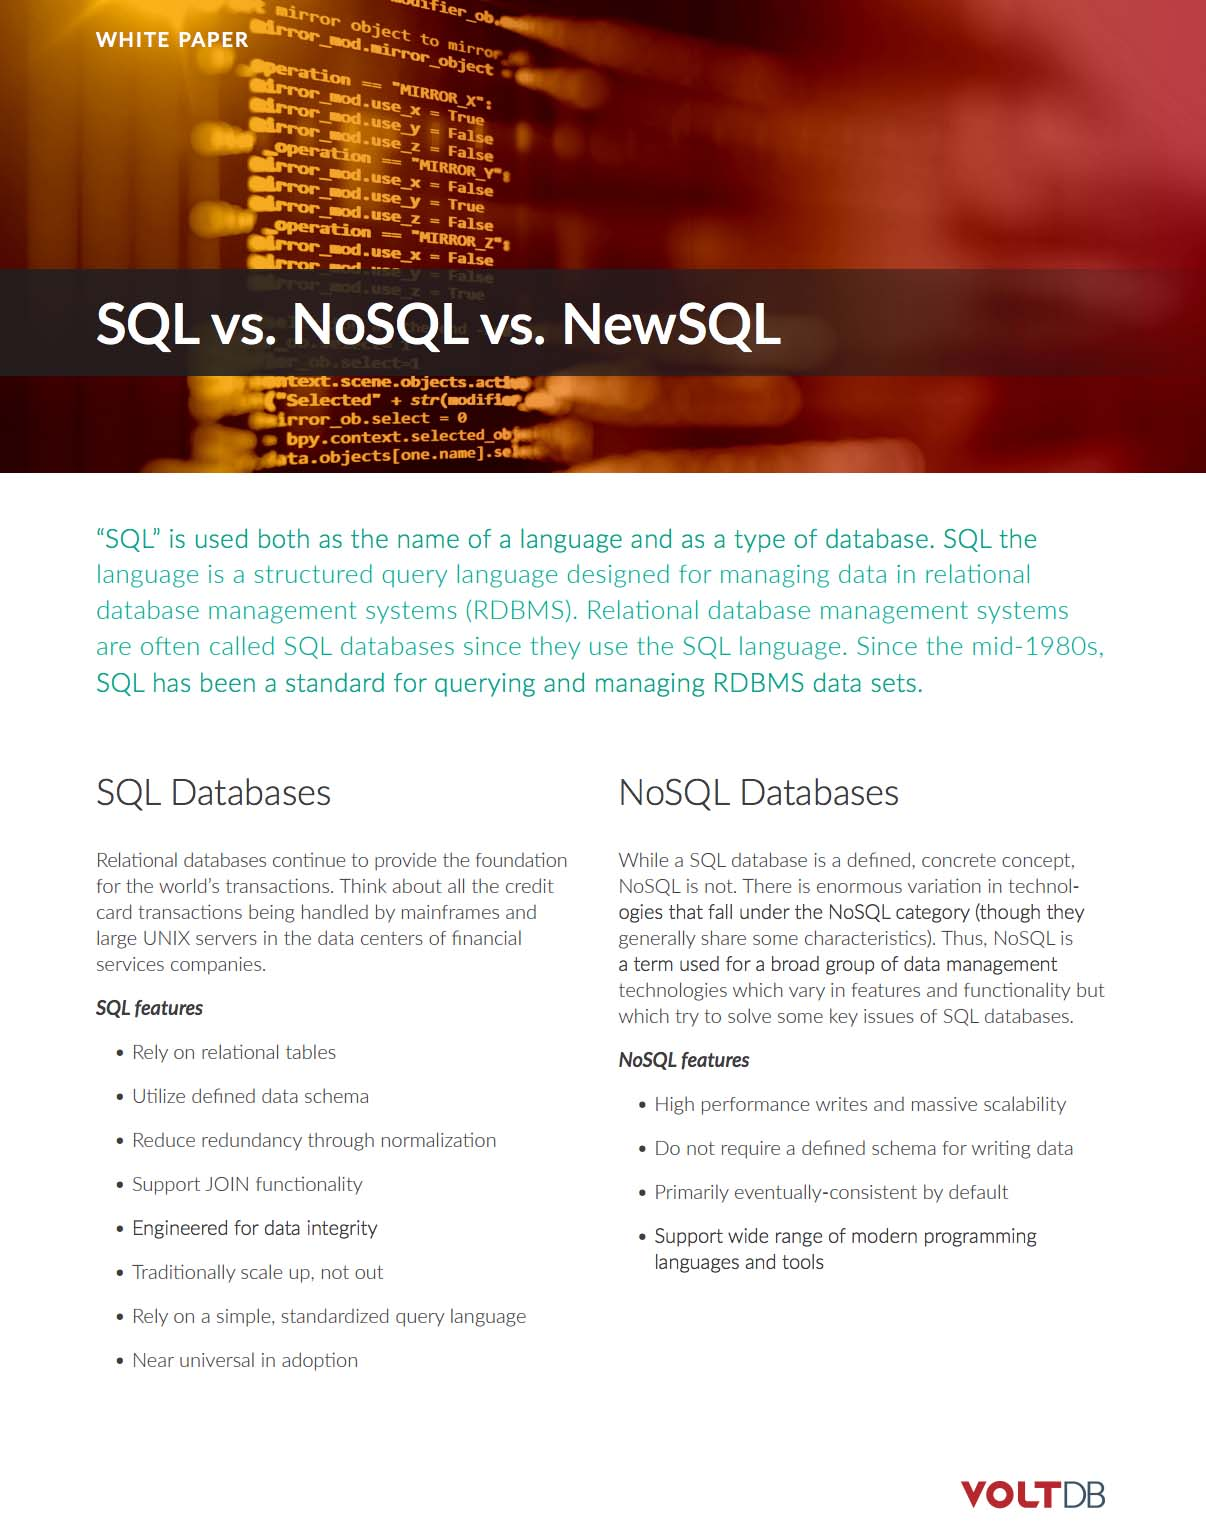 VoltDB Whitepaper: SQL vs NoSQL vs NewSQL